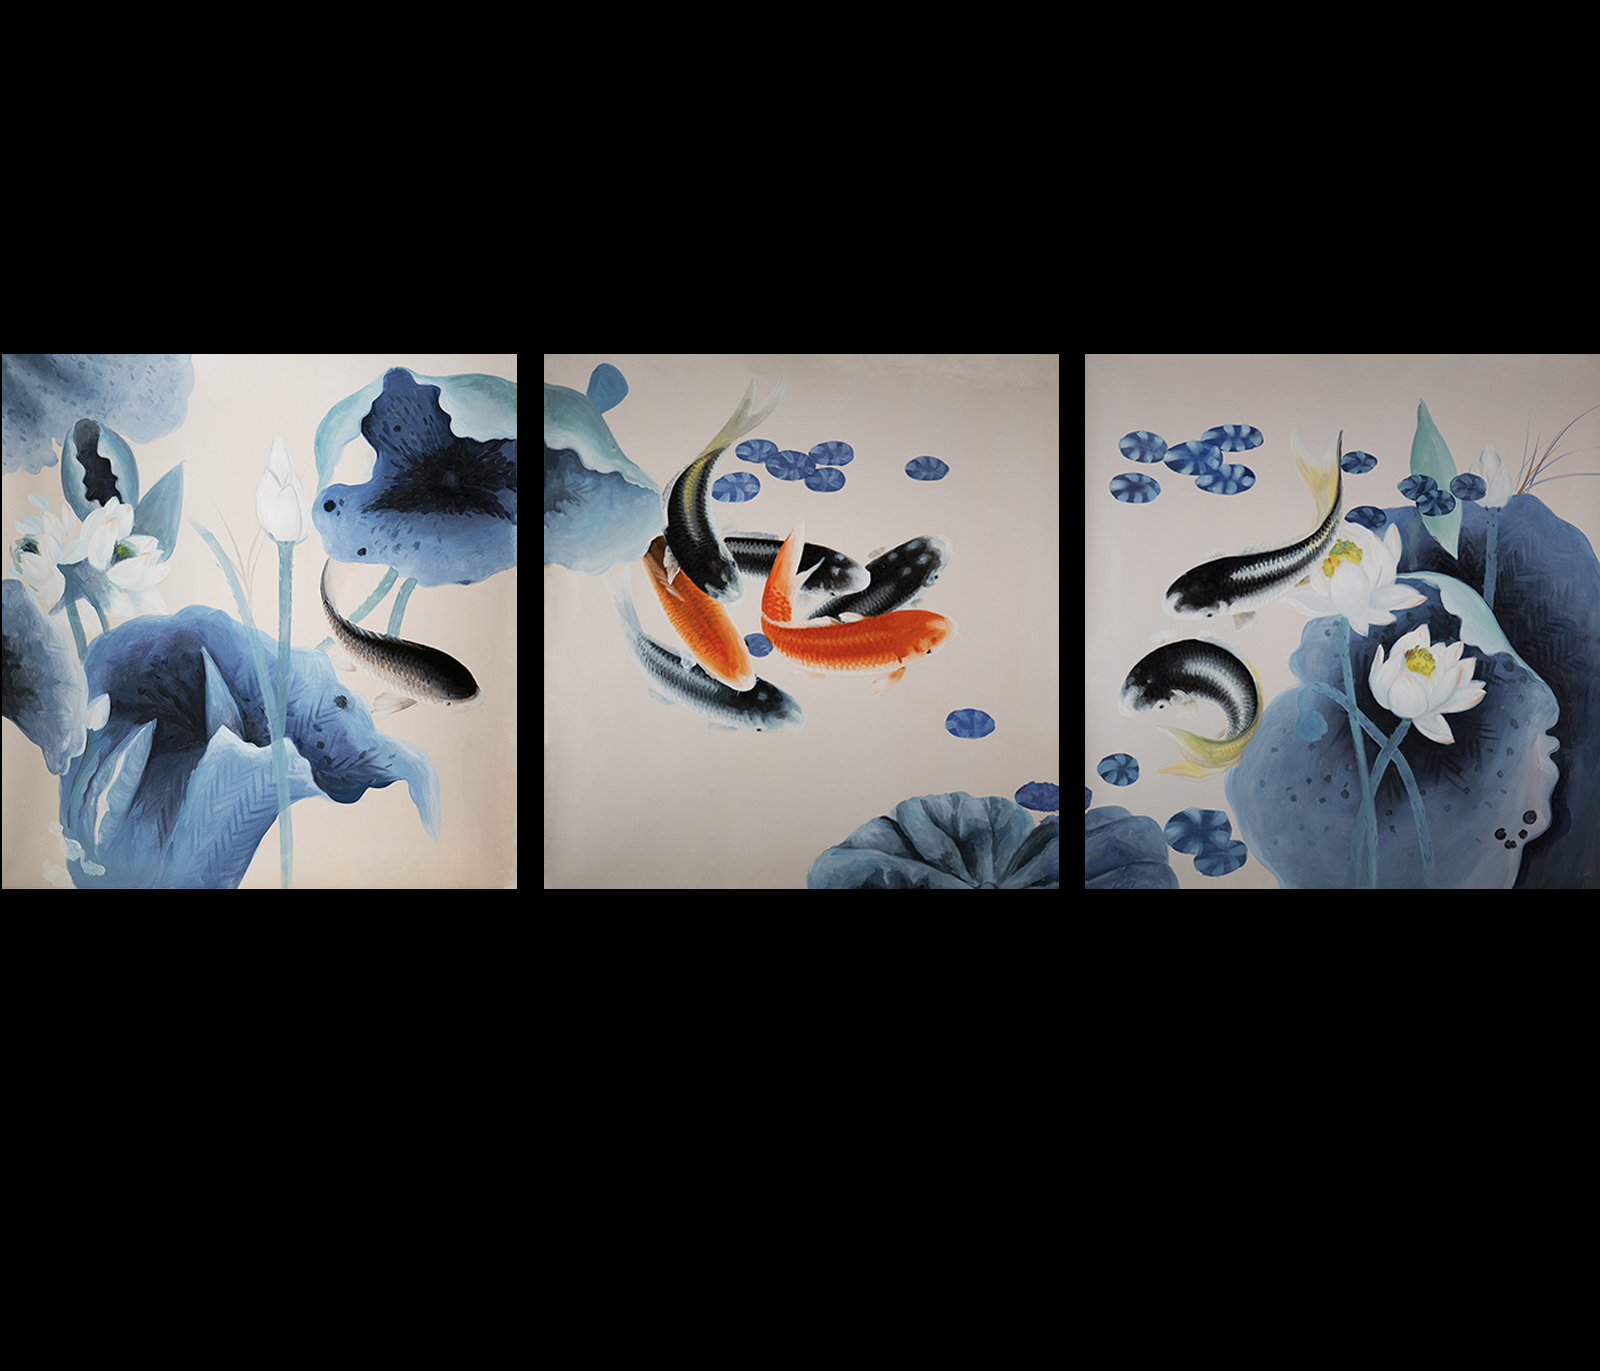 Koi fish painting contemporary art modern wall art d cor for Koi carp wall art